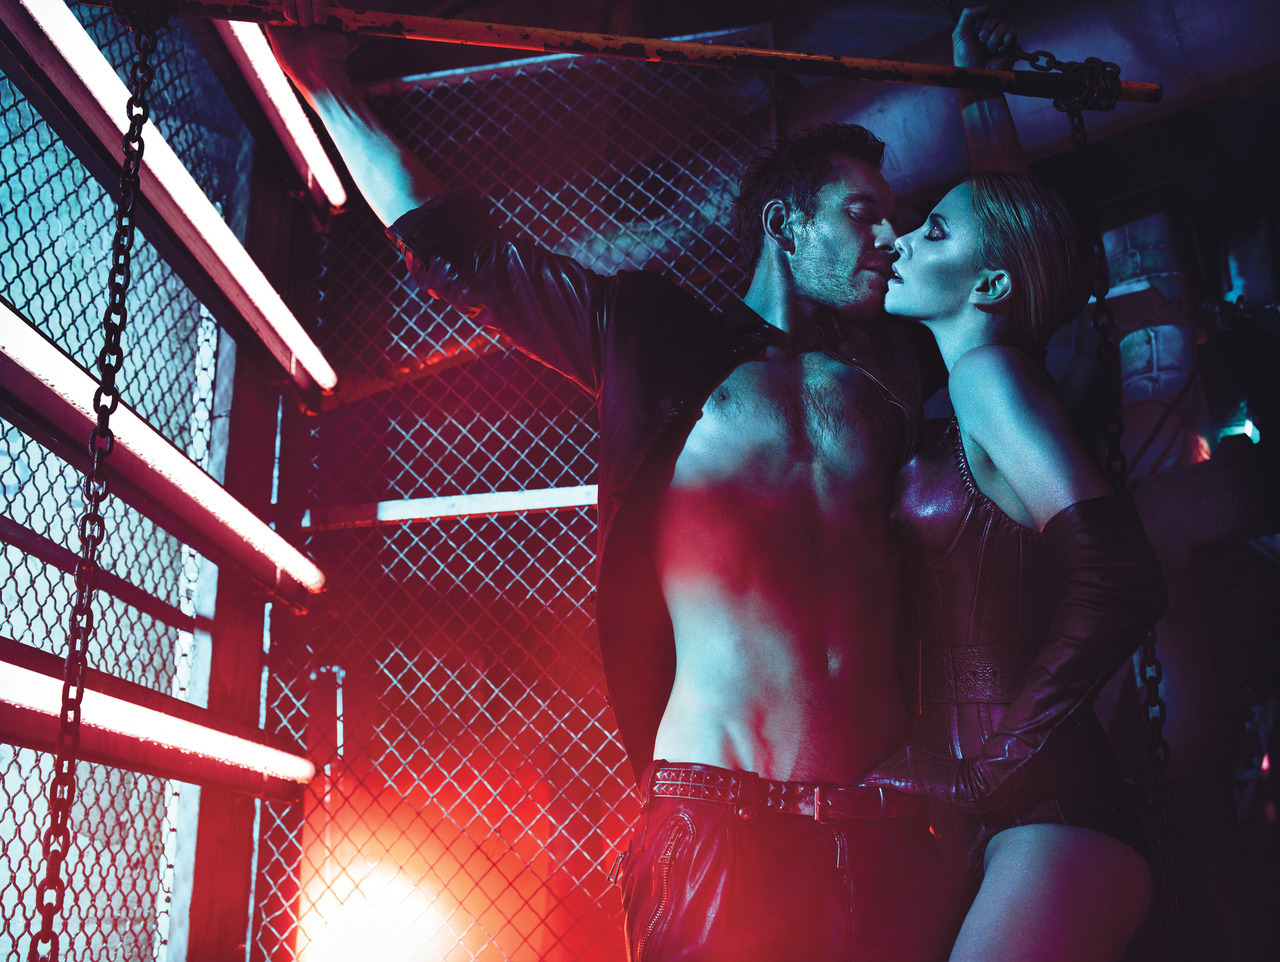 Michael Fassbender and Charlize Theron photographed by Mario Sorrenti for W Magazine, August 2012